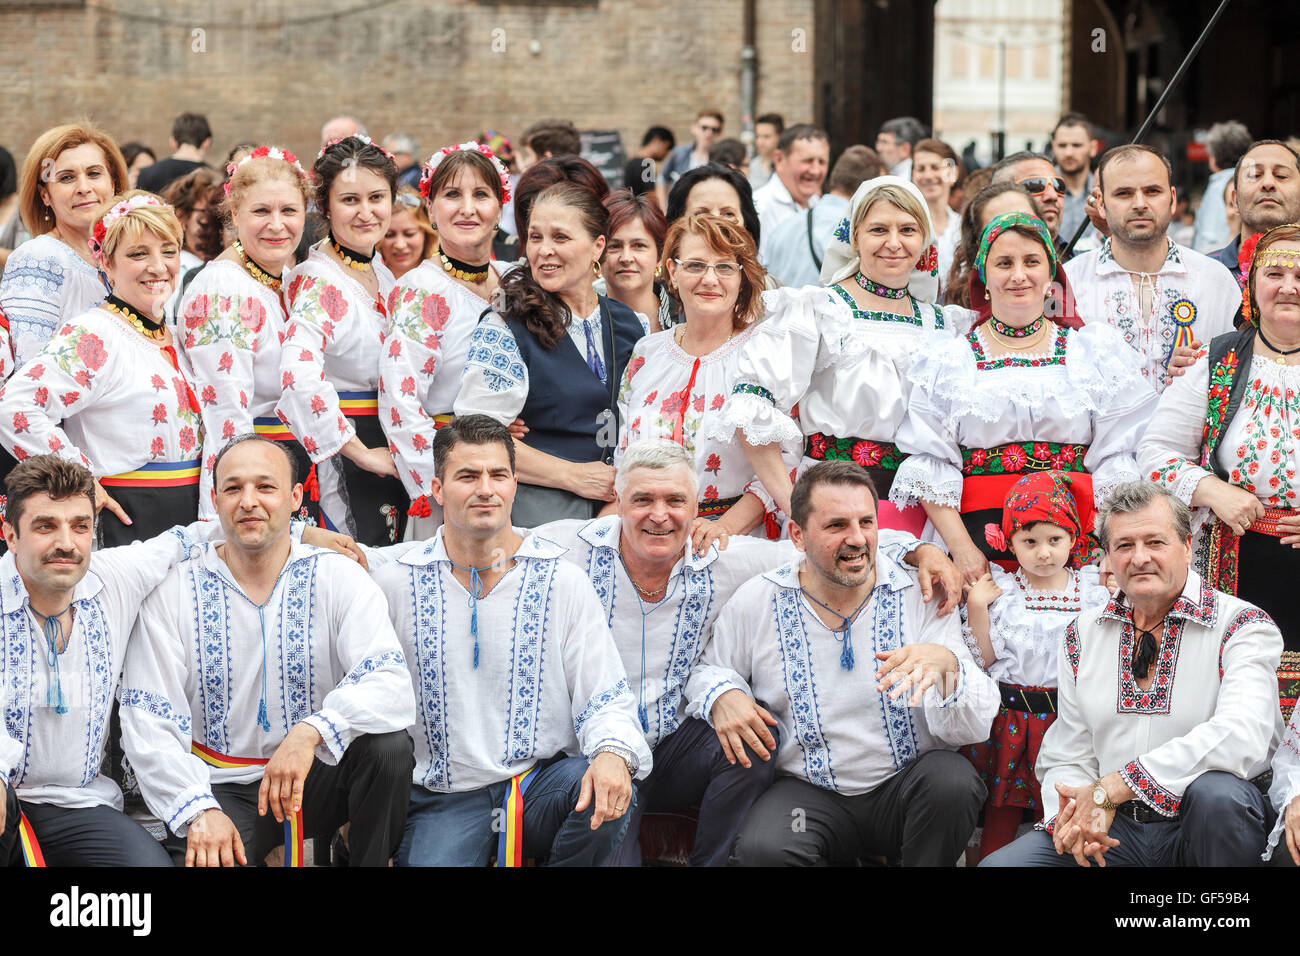 Romanian people wearing traditional romanian blouse 'ie' celebrating the international day of romanian blouse - Stock Image